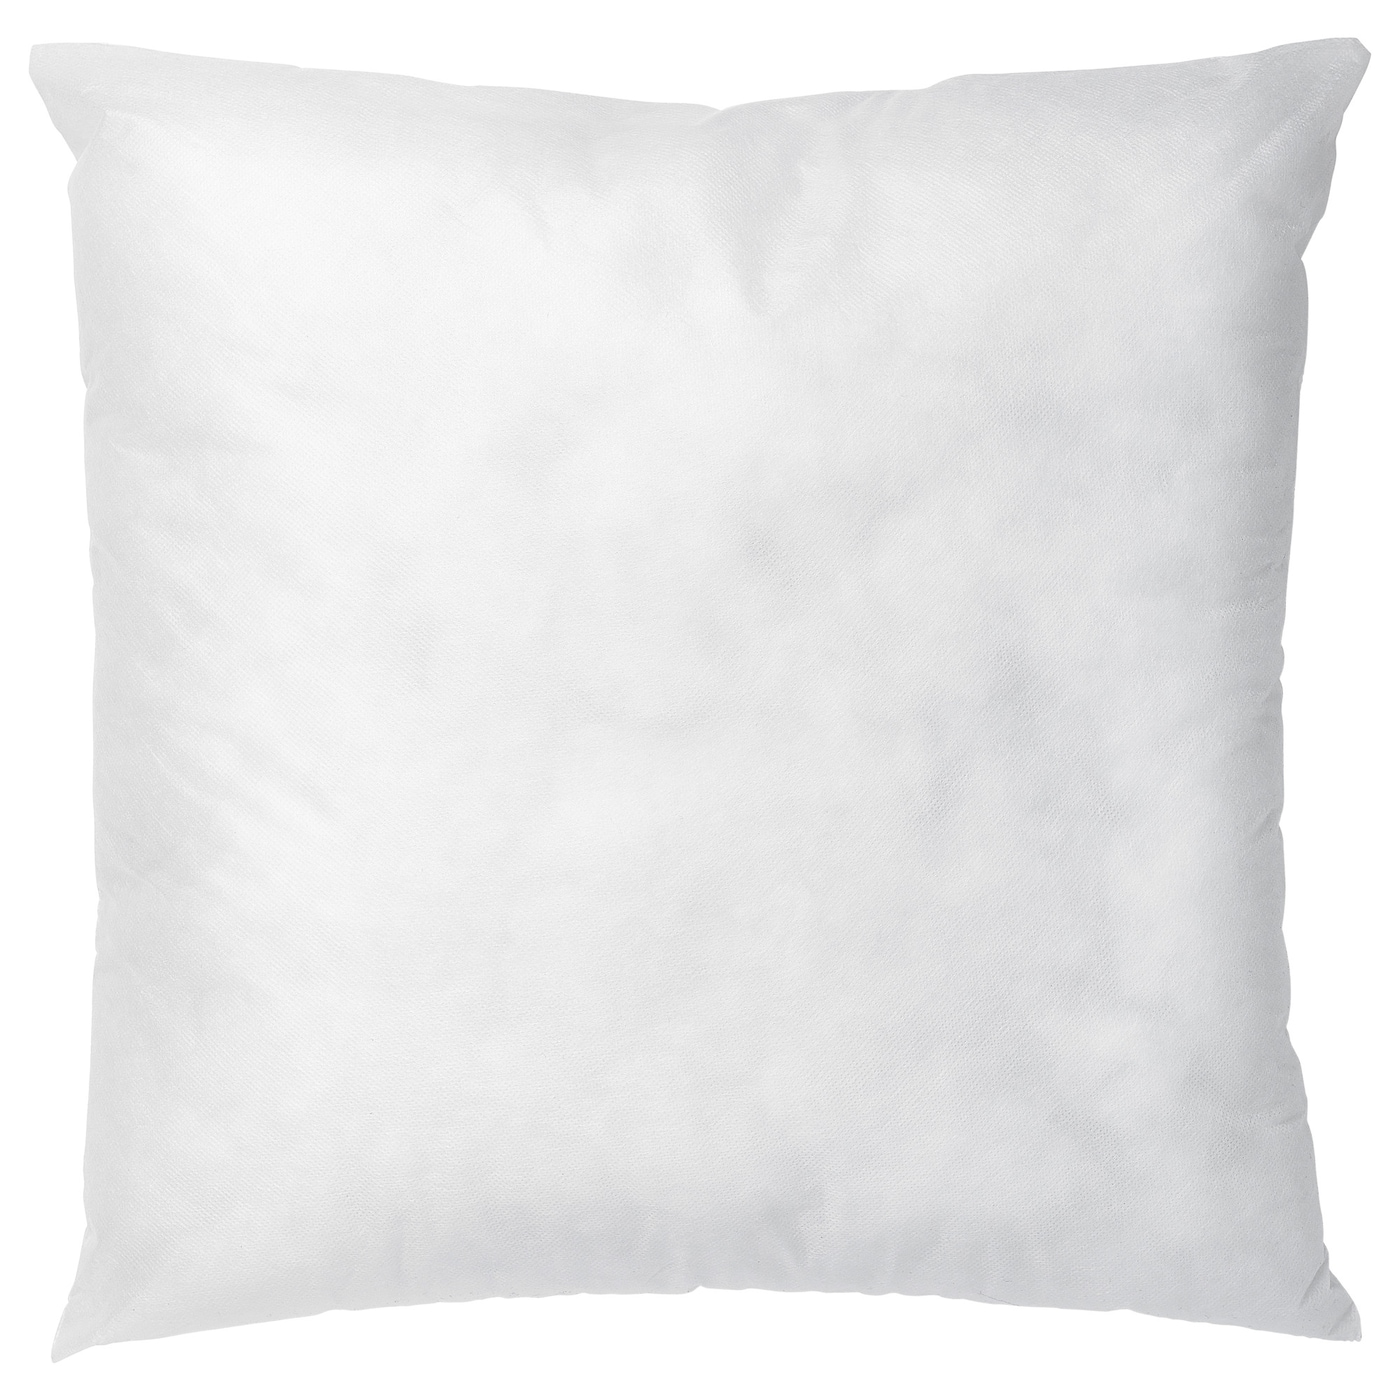 IKEA INNER cushion pad The polyester filling holds its shape and gives your body soft support.